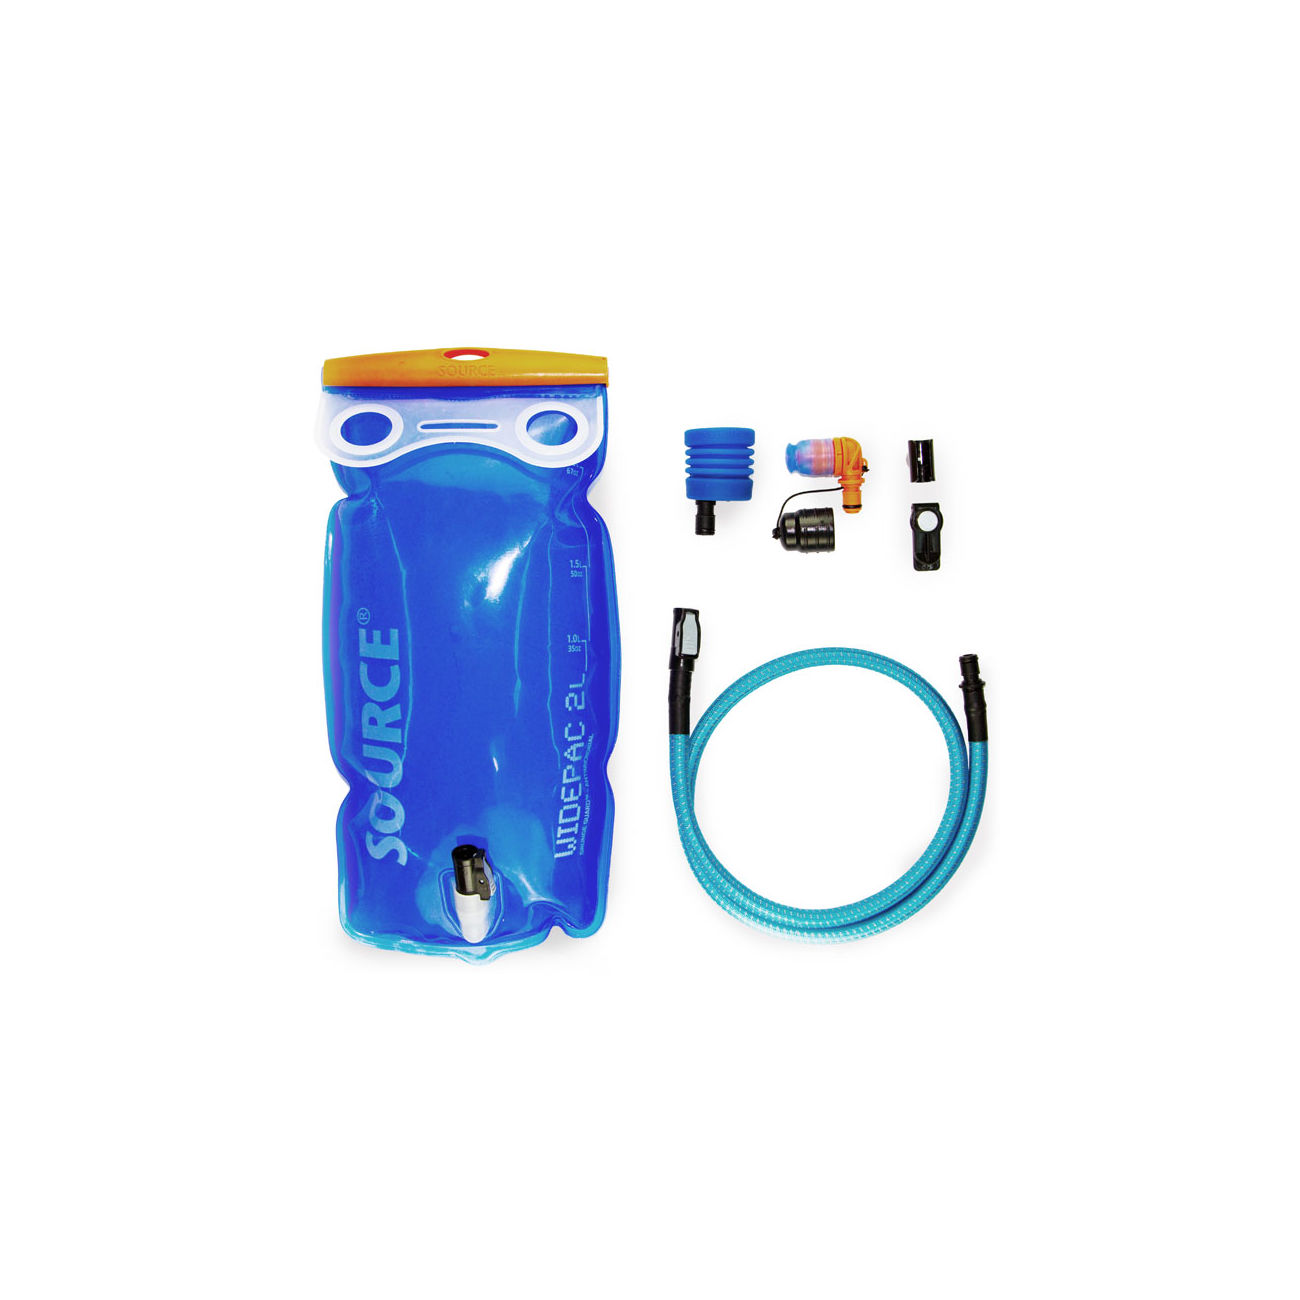 Source Trinksystem Ultimate Hydration System mit Widepac 2L, Helix Bite, UTA Adapter und Magnet Clip 0